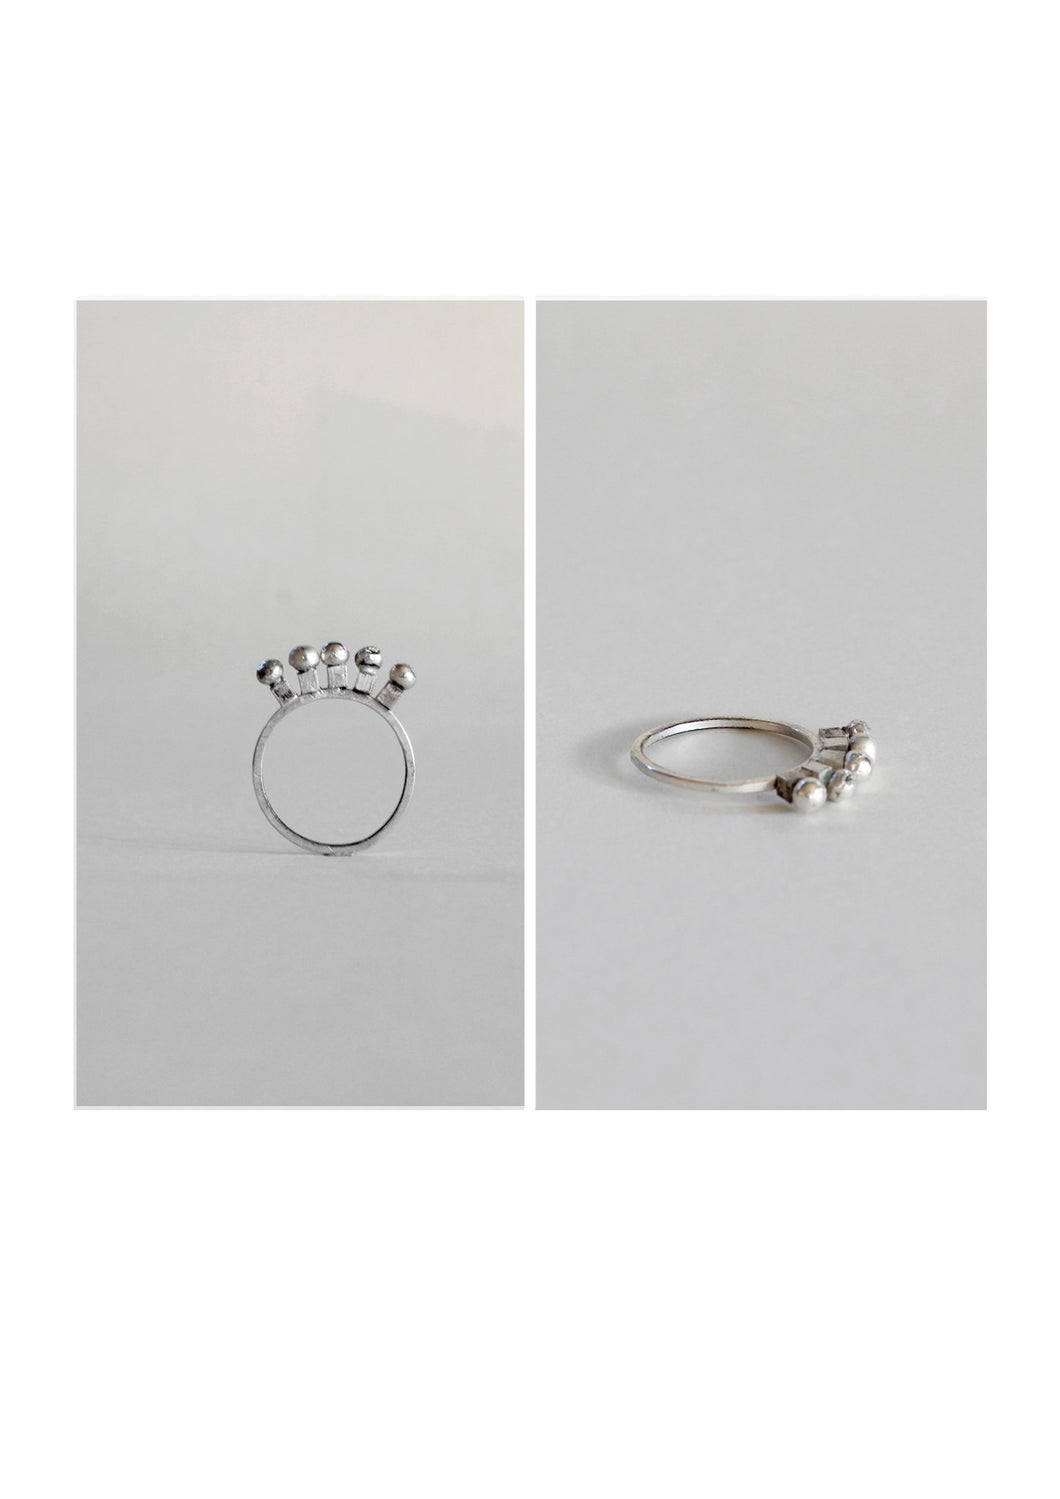 Series 1, Ring 10, sterling silver